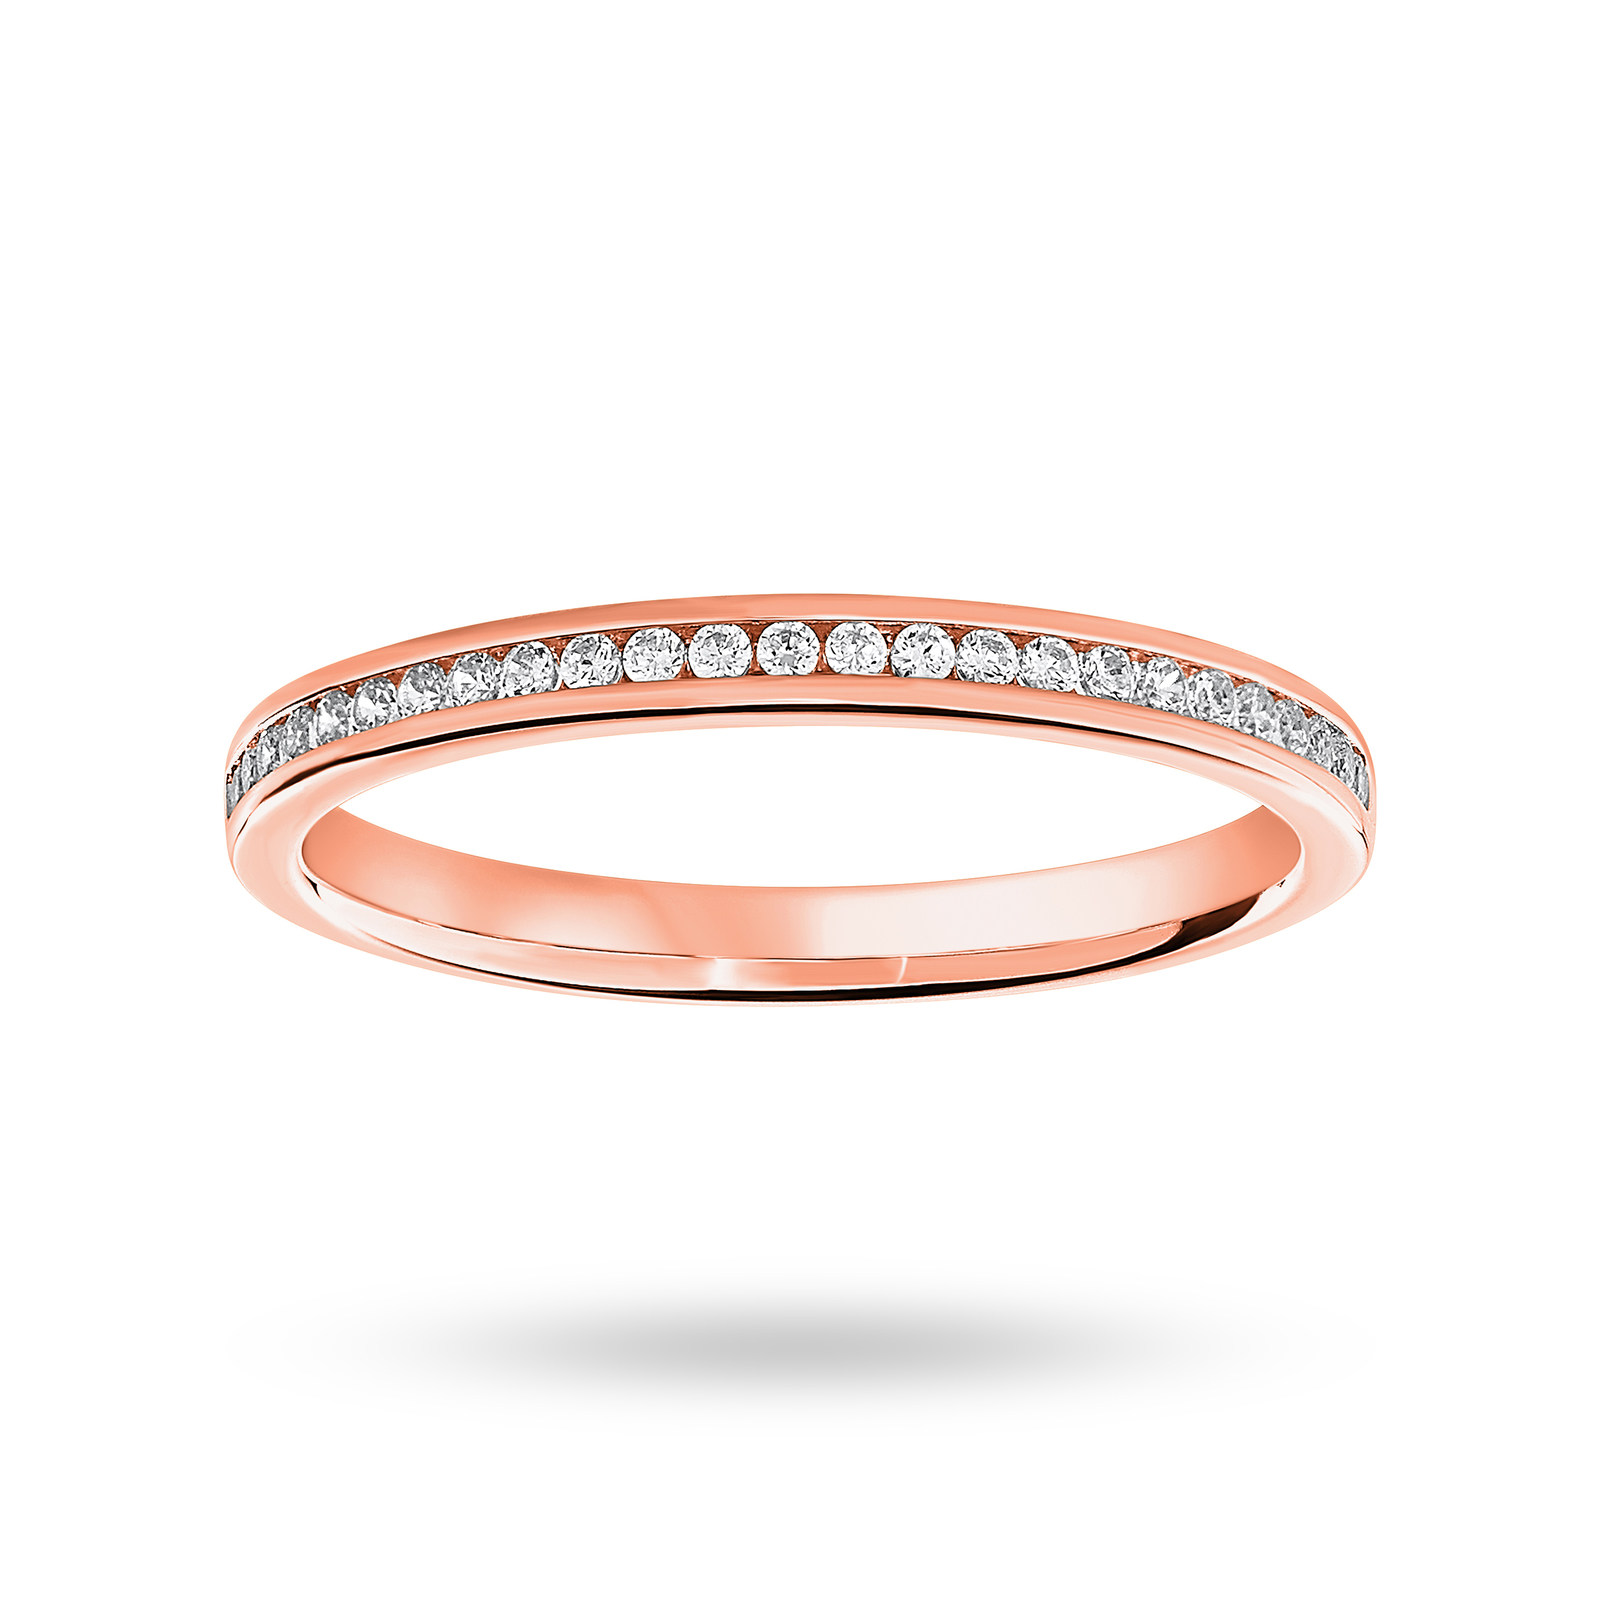 18 Carat Rose Gold 0.12 Carat Brilliant Cut Half Eternity Ring